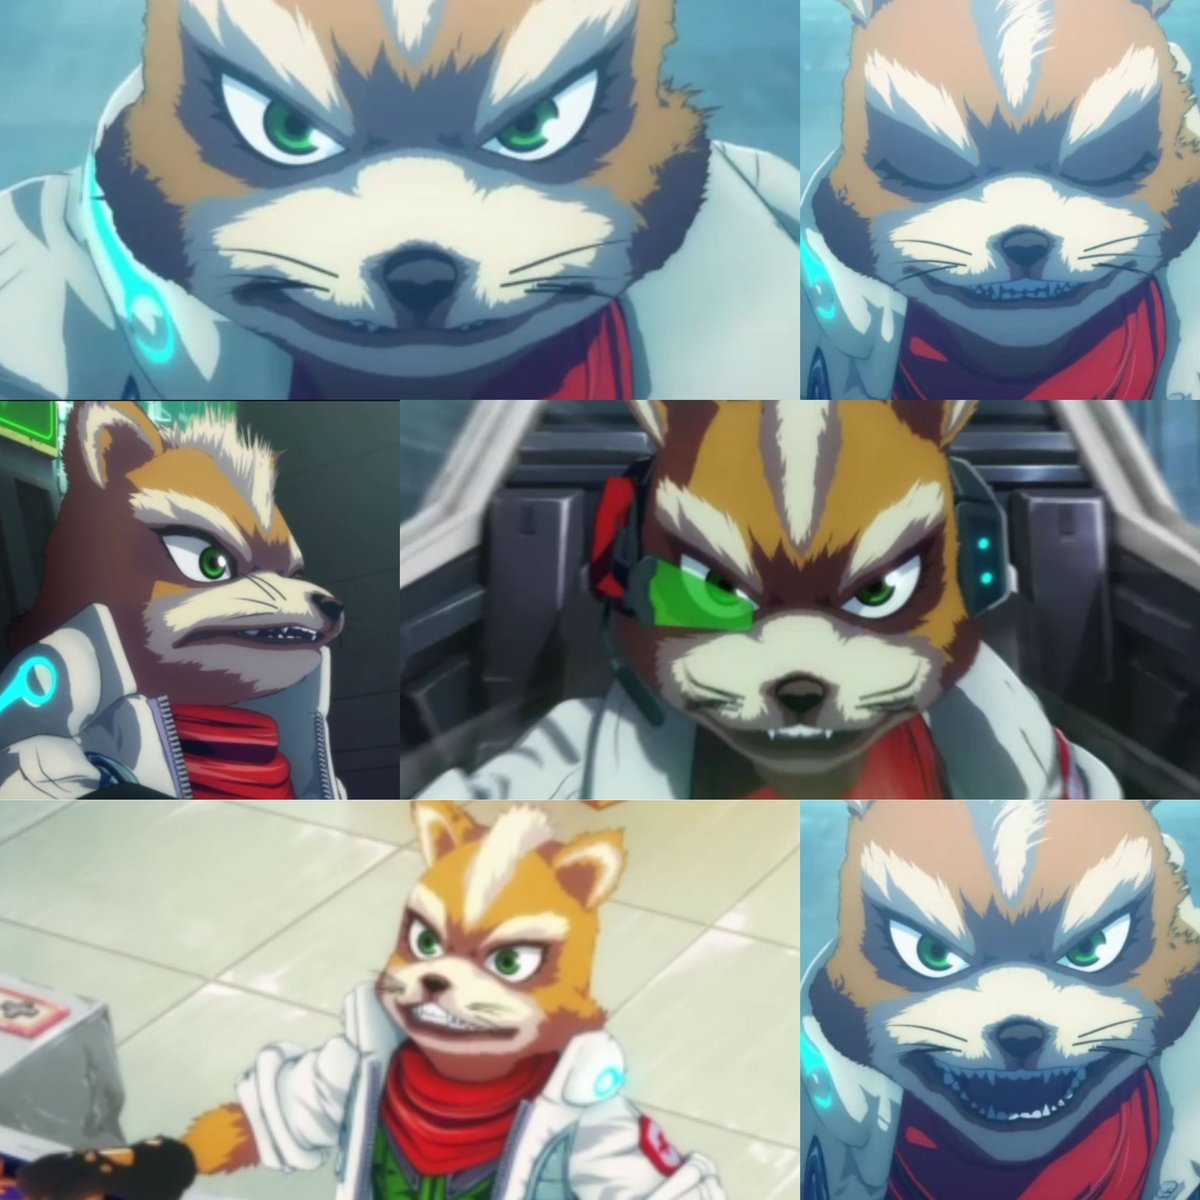 Was having a little too much fun screen capturing the Star Fox Zero The Battle Begins short. Lol  I'm dying #starfox #nintendo #funnypic.twitter.com/2qEx0kD9TT